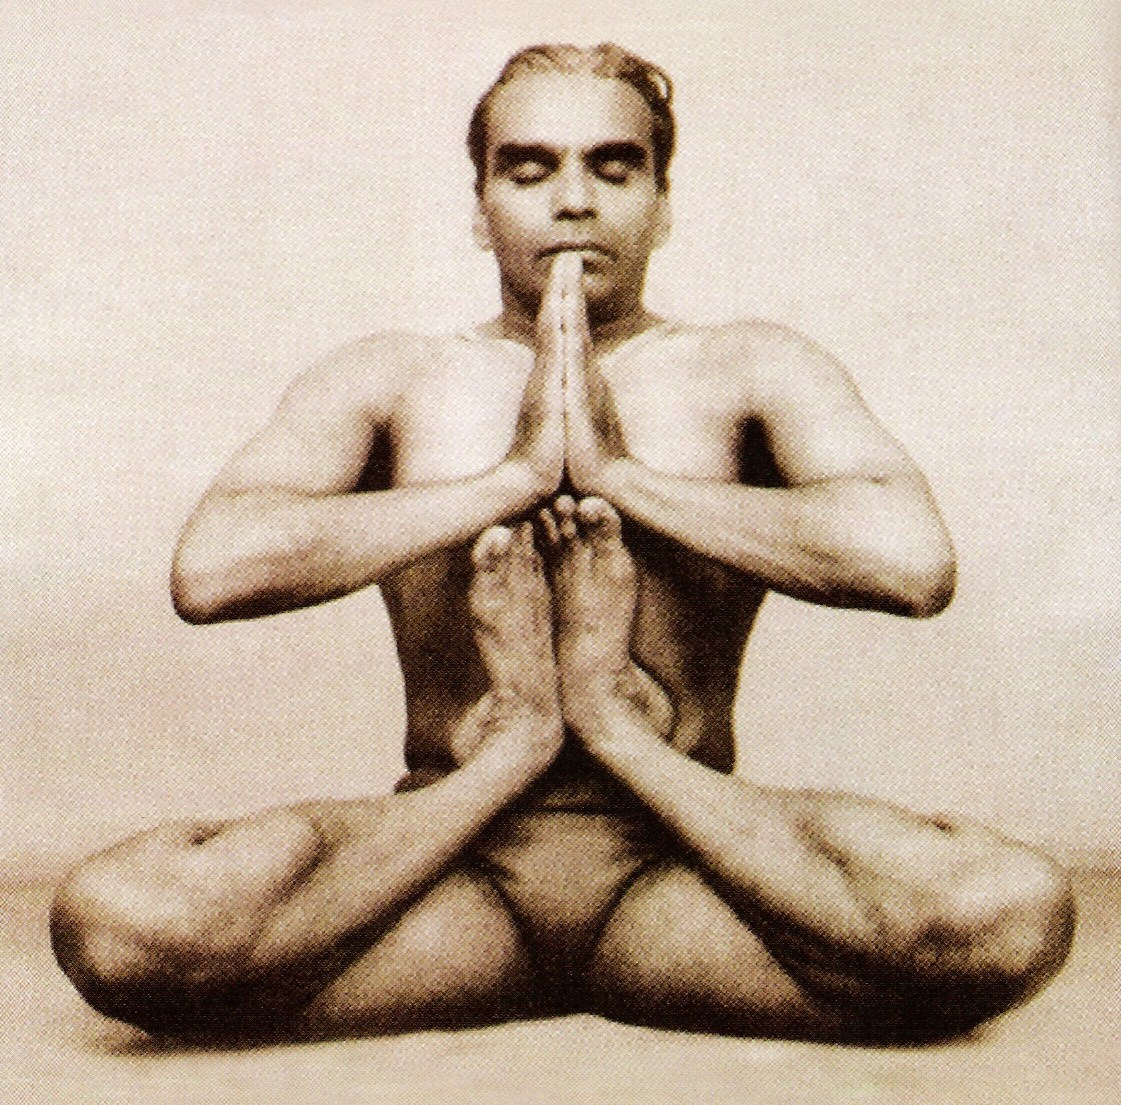 i12bent :     Today, December 14 is the day of the astrologers, star gazers and prophet masters:    Master yogi BKS Iyengar is an agile 92 years old today!